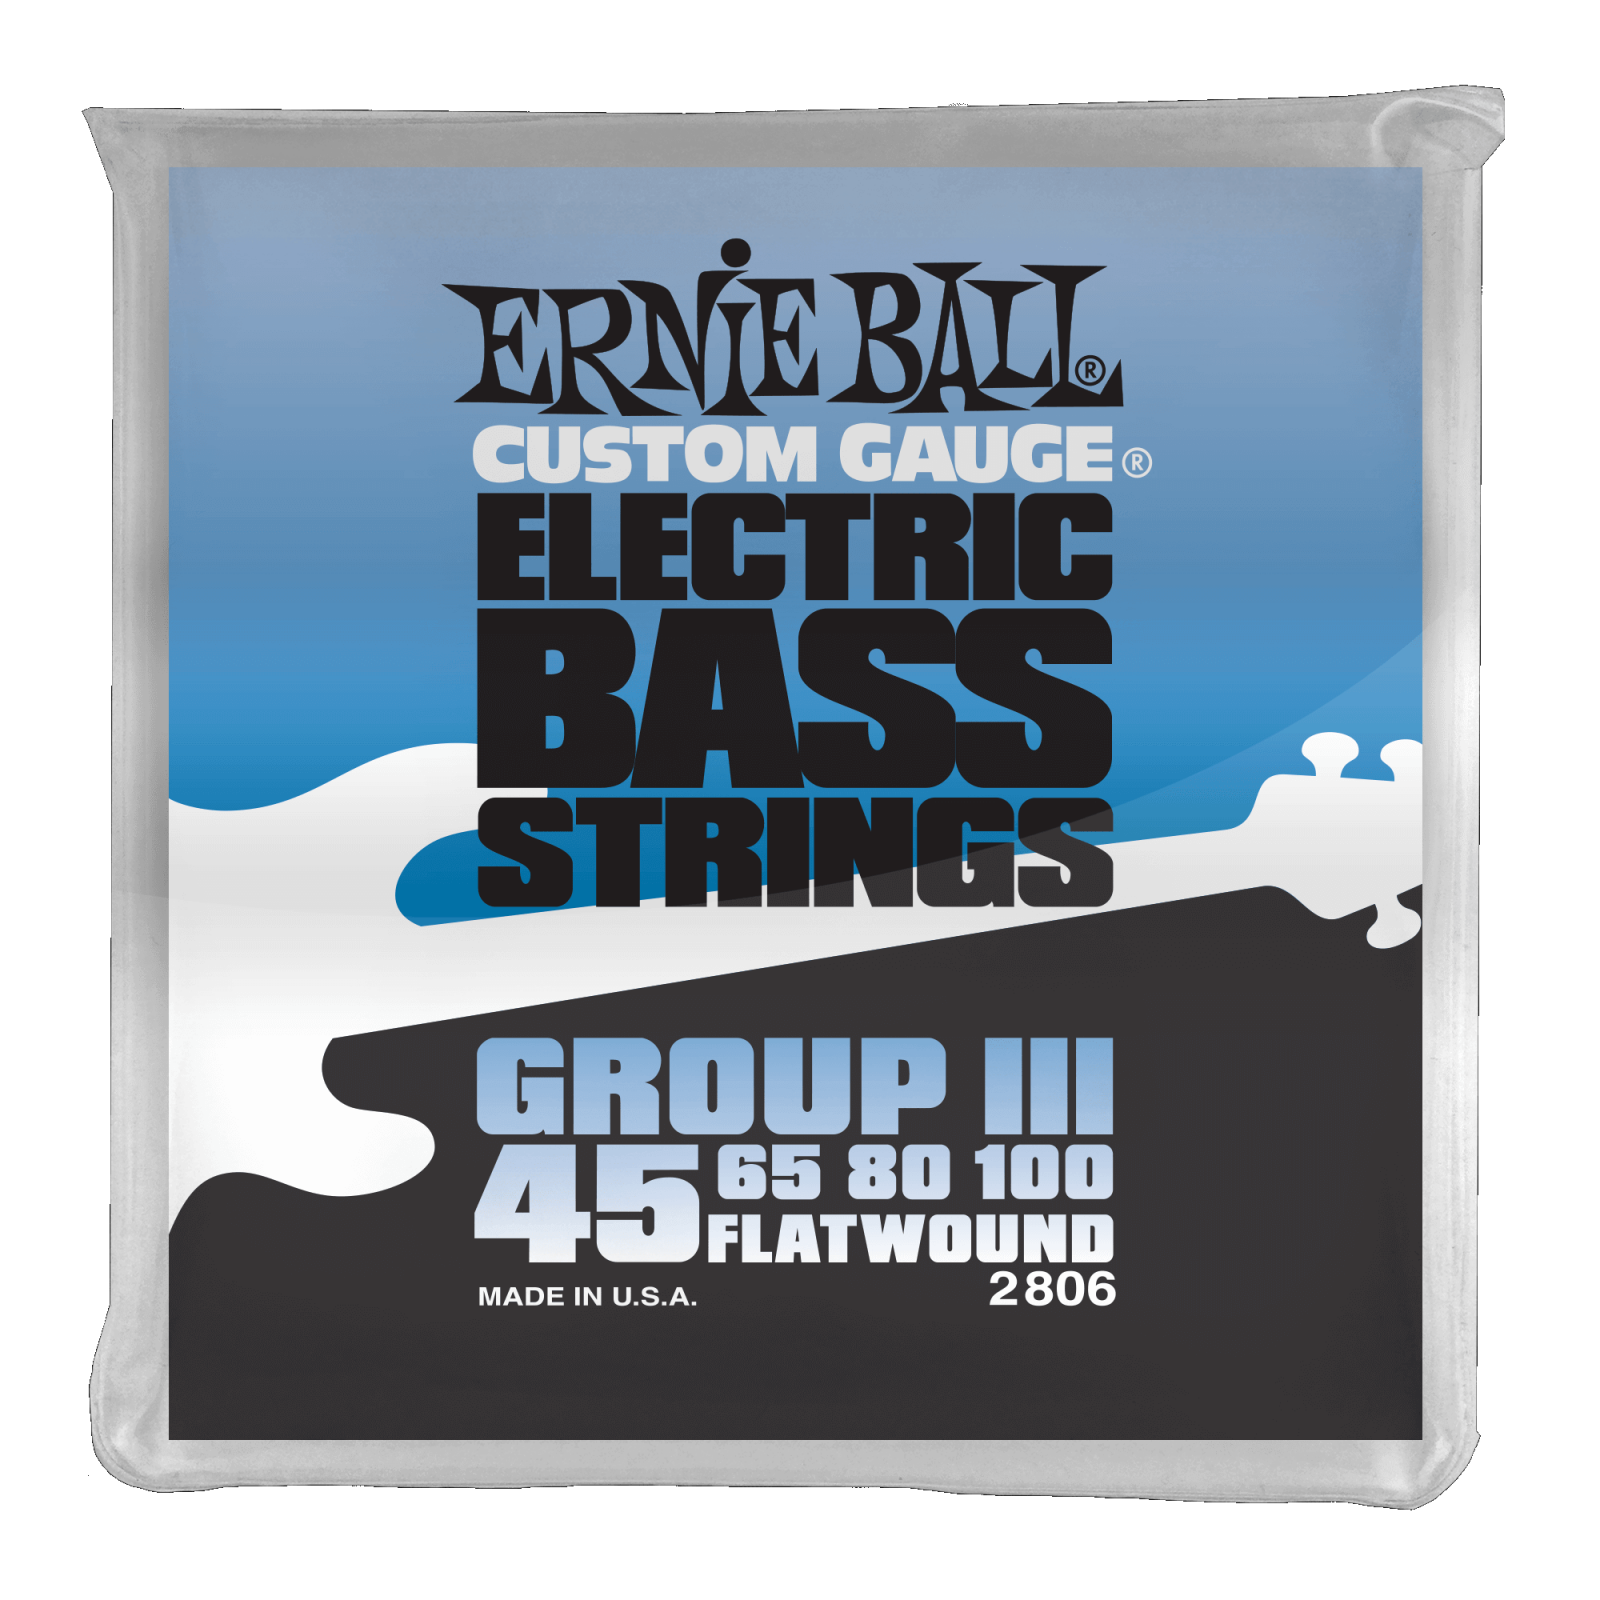 Ernie Ball Flatwound Group III Electric Bass